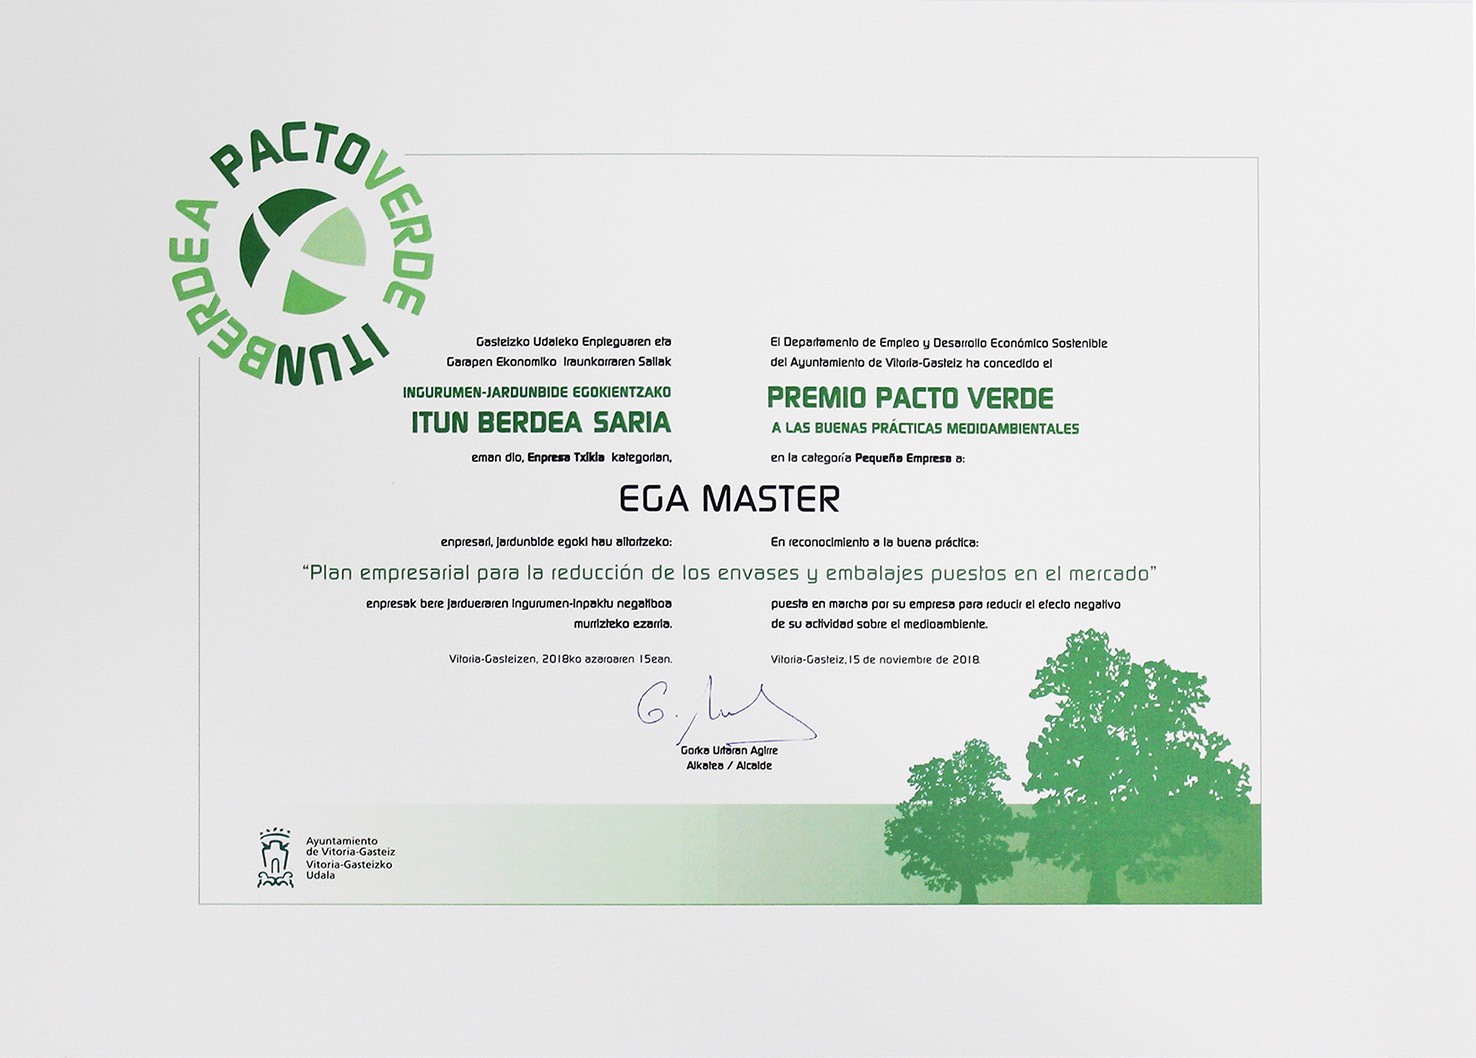 EGA MASTER WINNER OF THE IV GREEN PACT AWARD